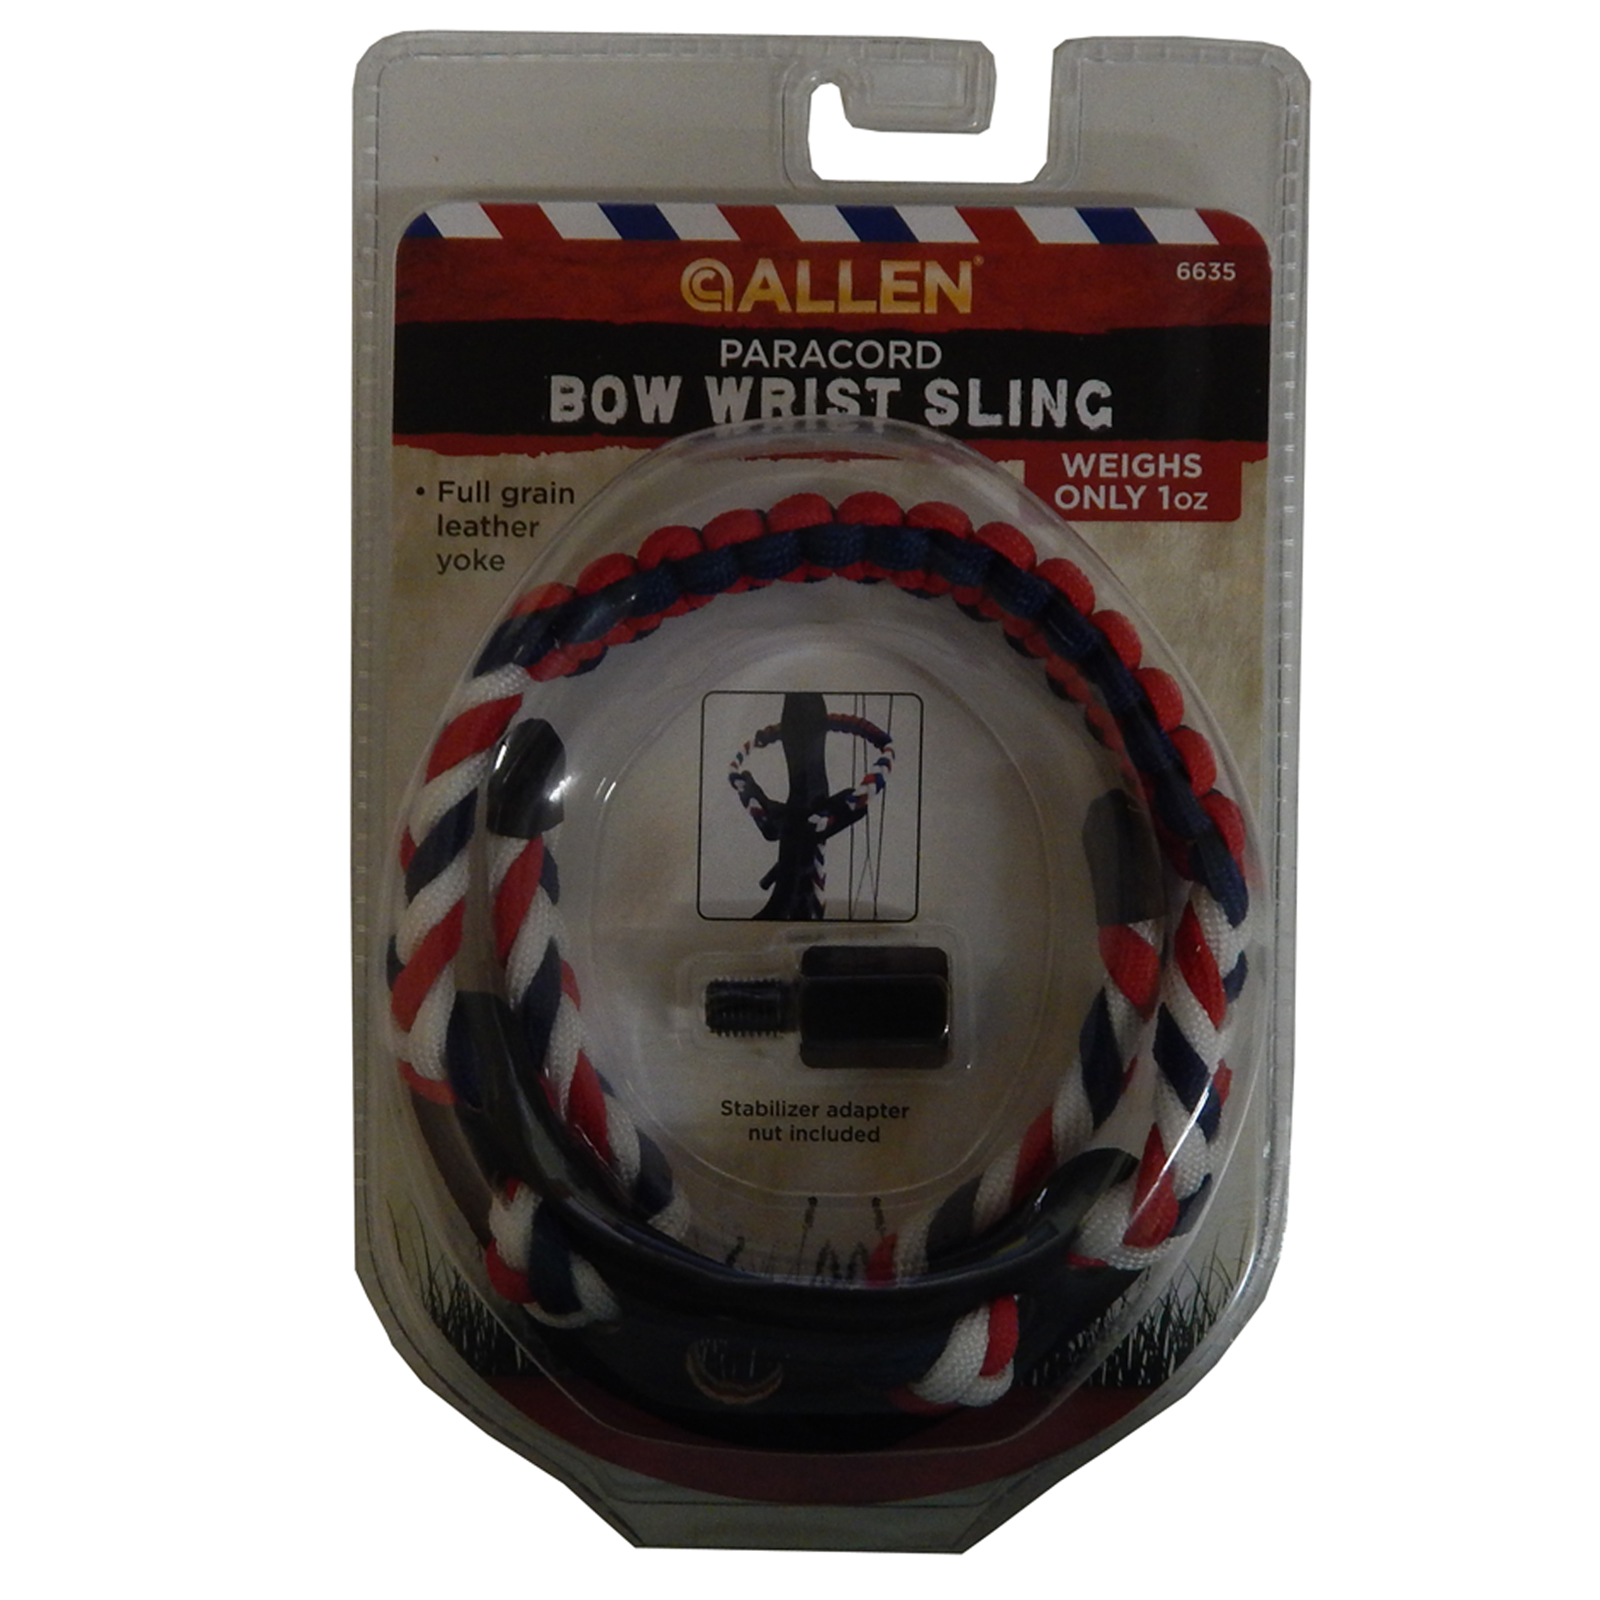 Allen Paracord Compound Bow Braided Wrist Sling Red White & Blue, 6635